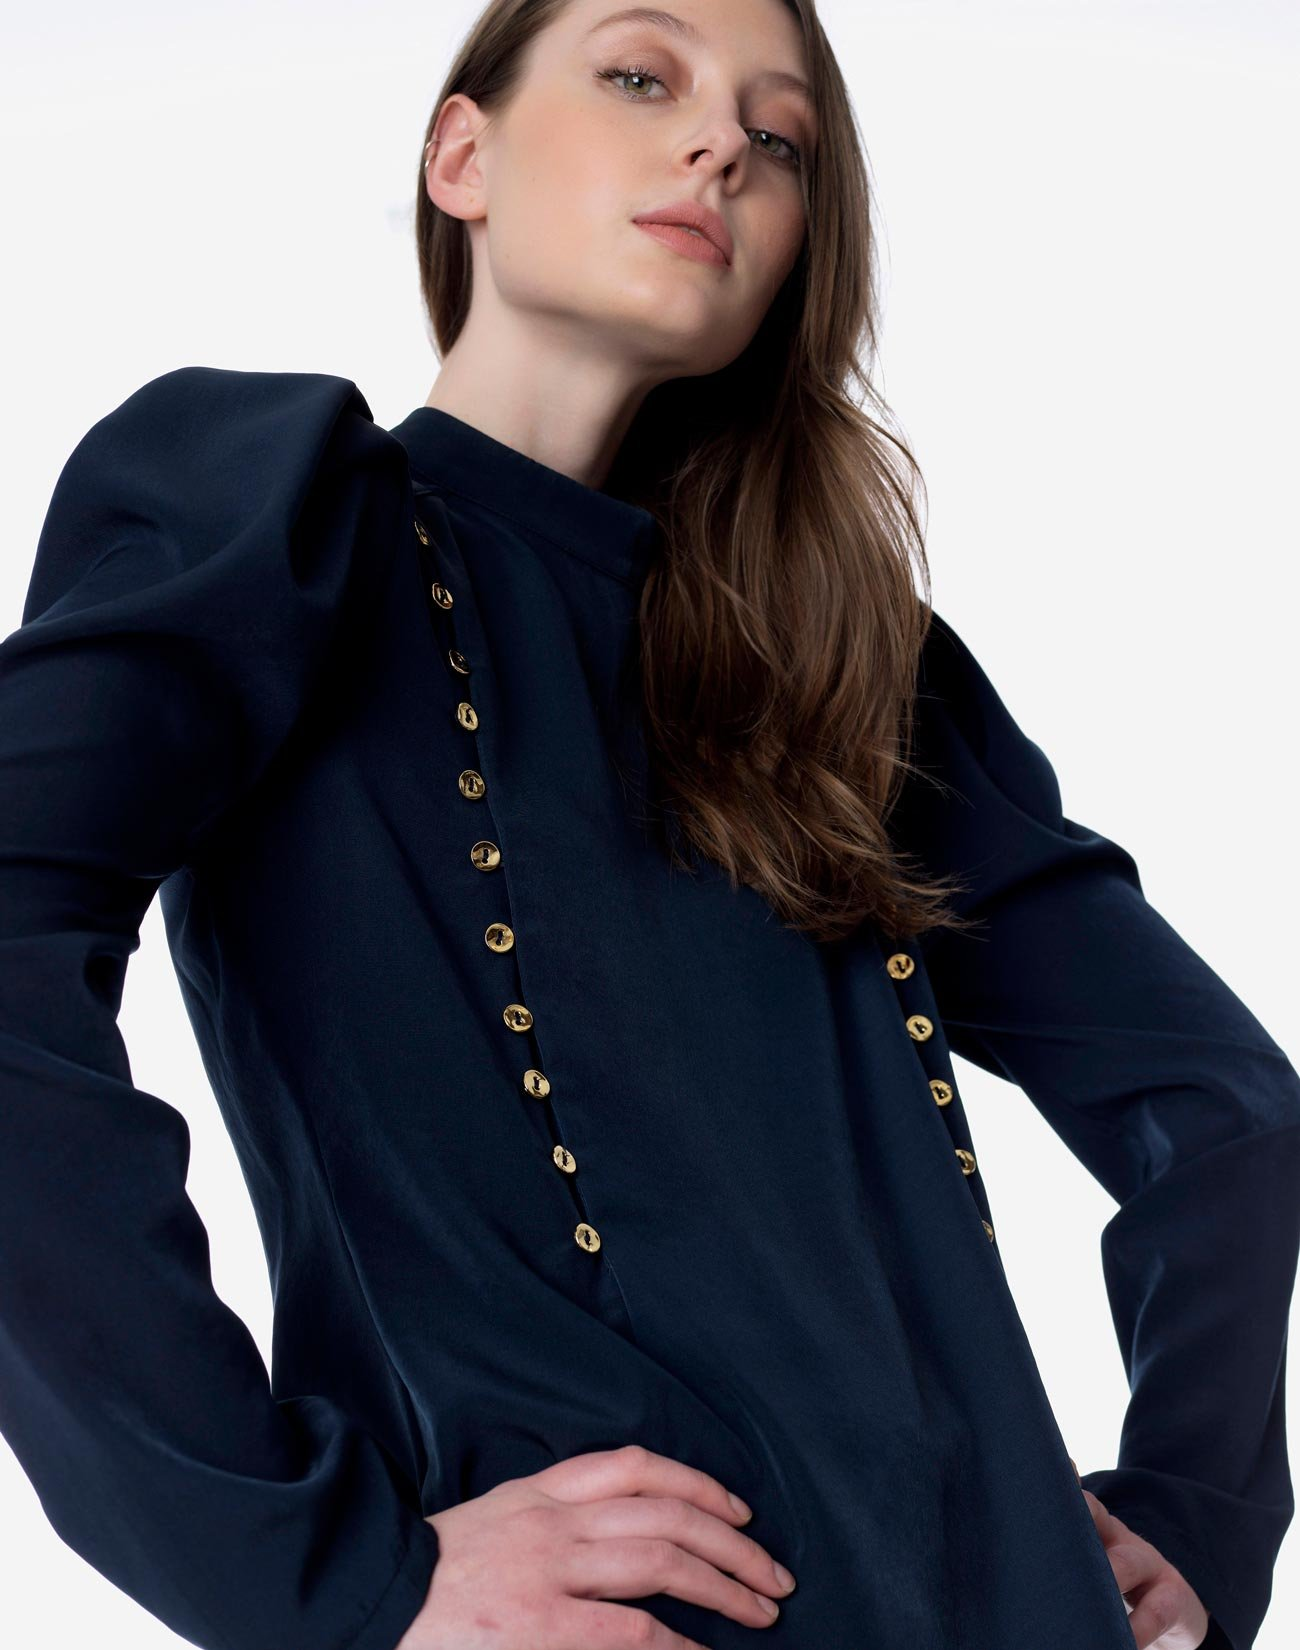 Blouse with gold buttons